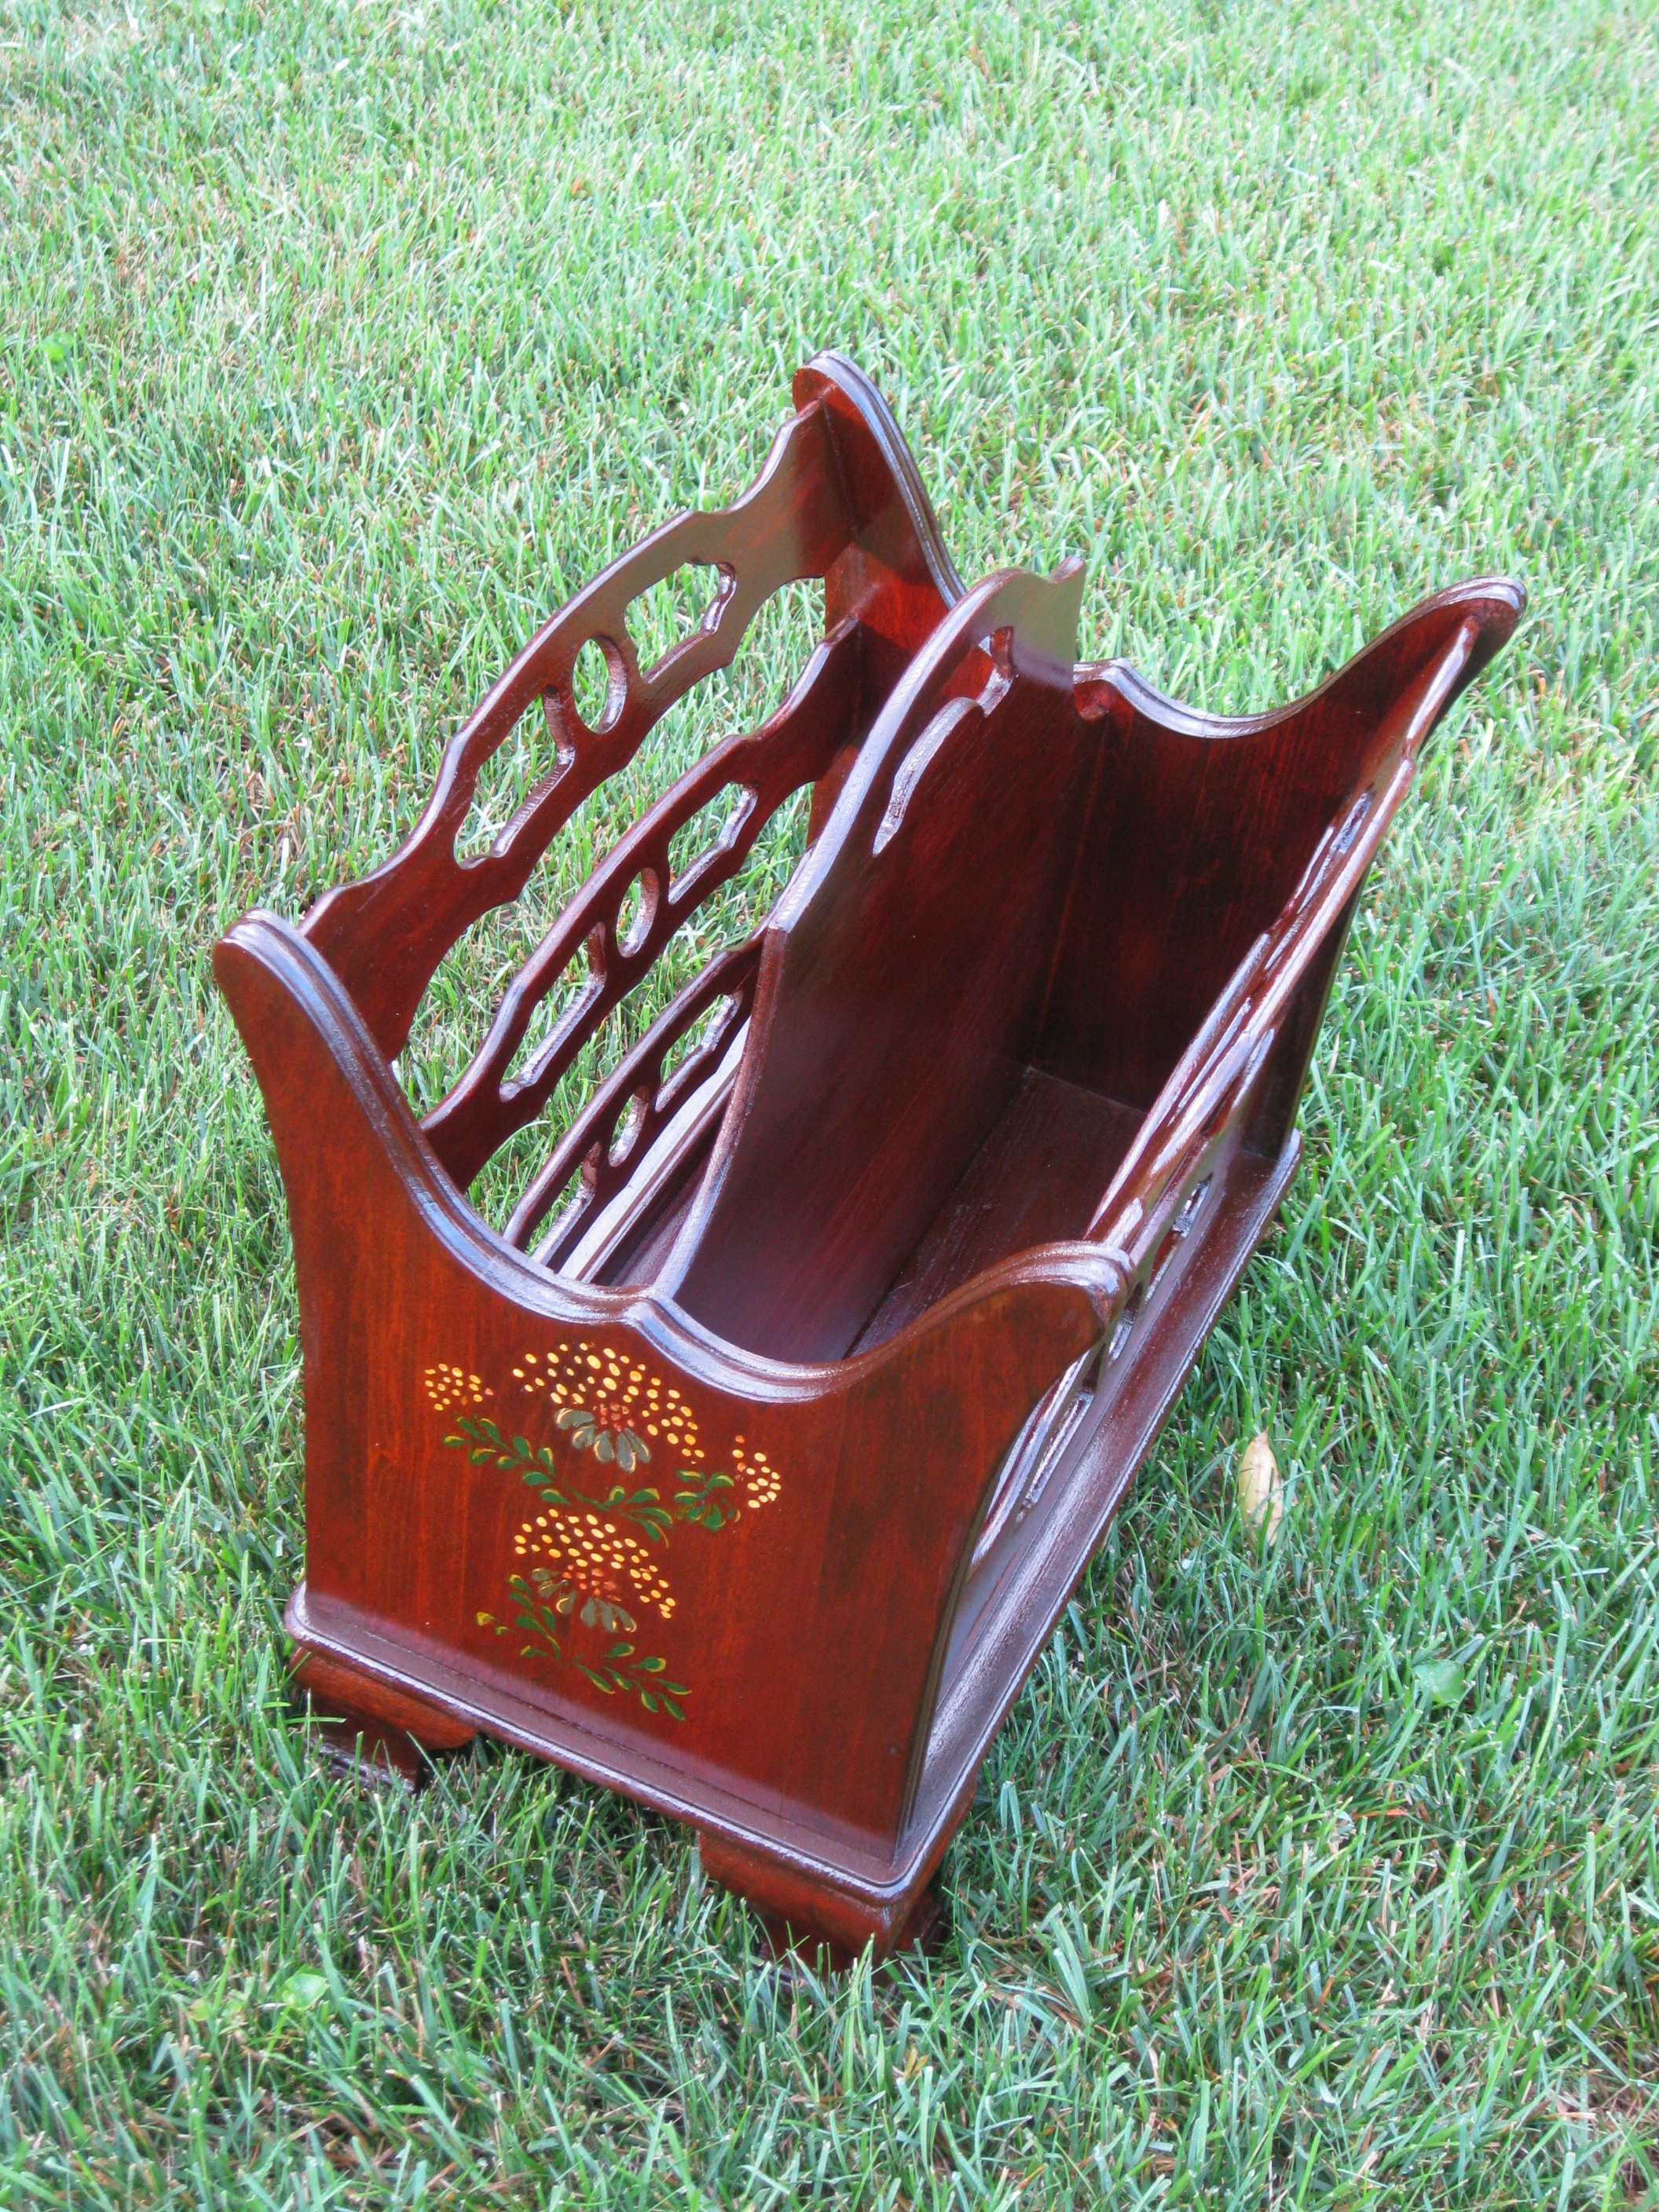 The old magazine rack was cleaned, repainted and varnished